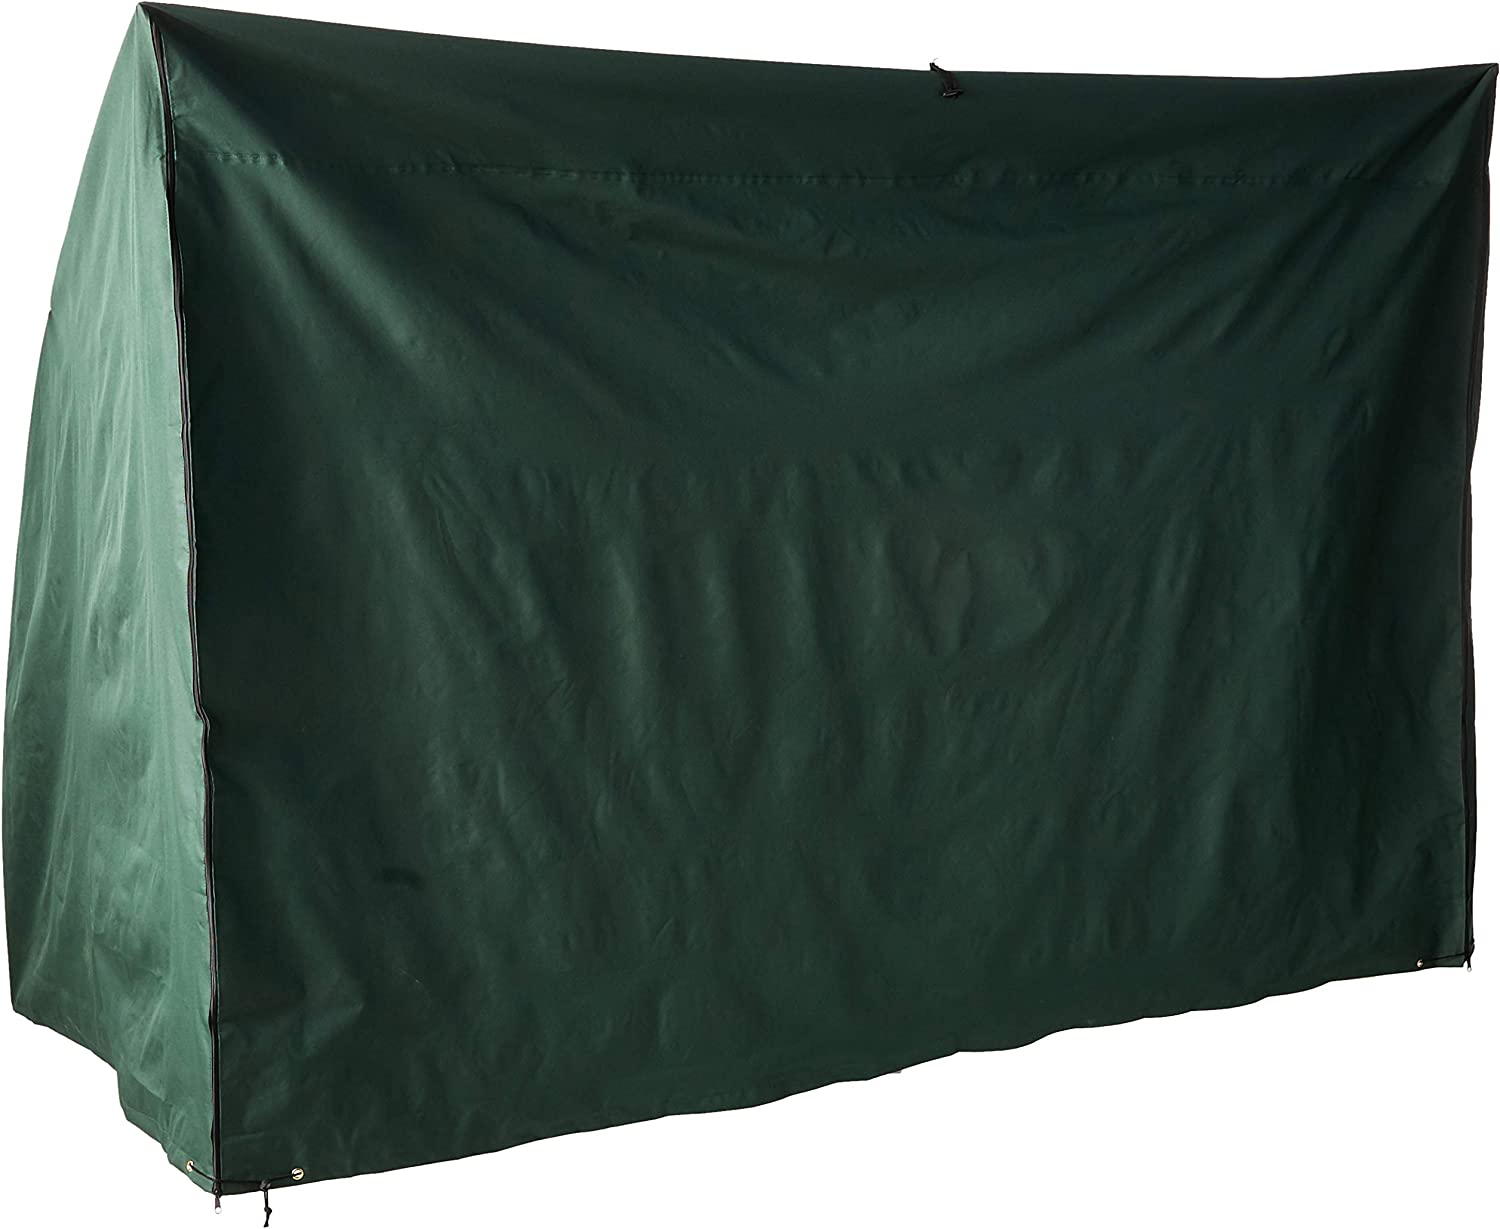 "Bosmere C510 Weatherproof Outdoor Swing Seat Cover, 96"" L x 57"" W x 67"" H, Green"